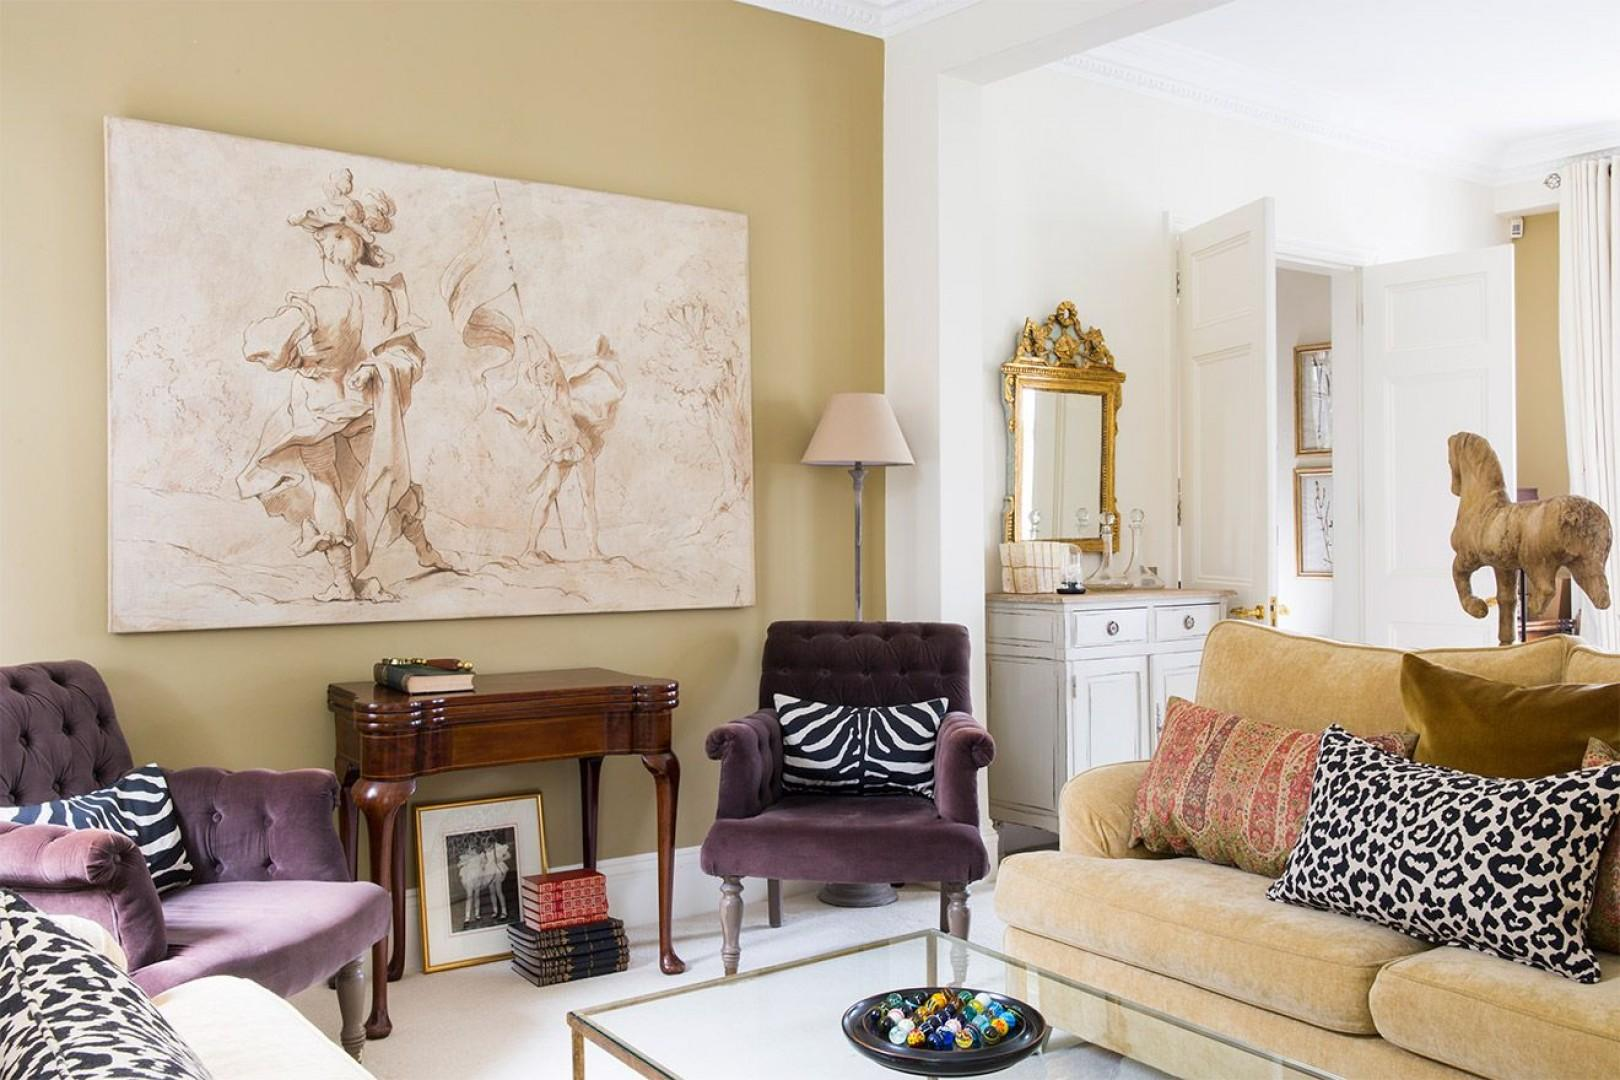 Spend leisurely evenings in this luxurious Kensington home